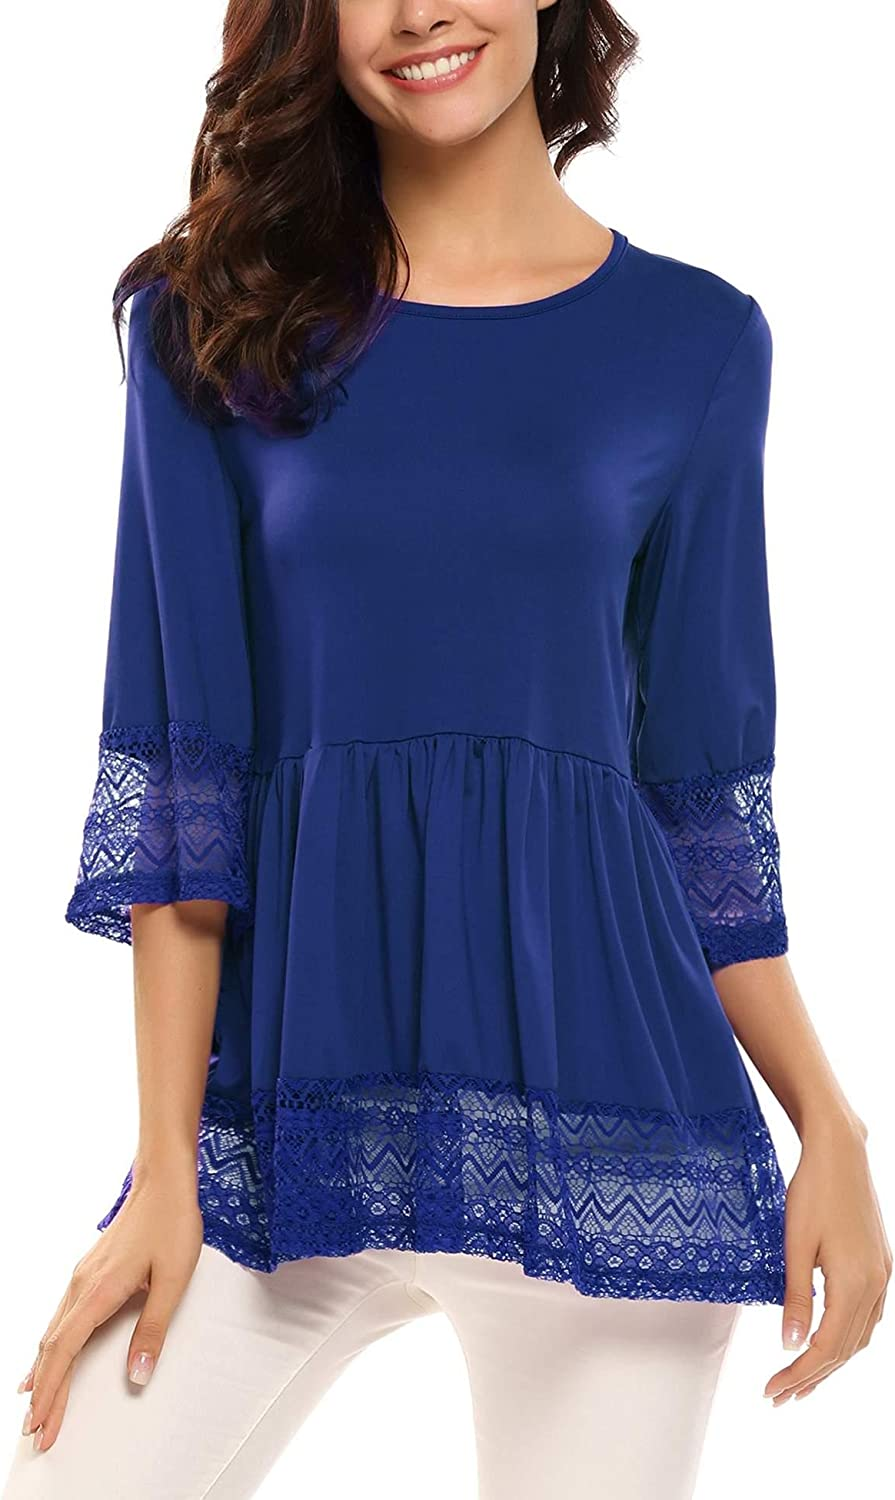 UNibelle Womens Casual 3 4 Sleeve Cute Babydoll Ruffle Flare Lace Tunic Tops T Shirts Loose Blouse